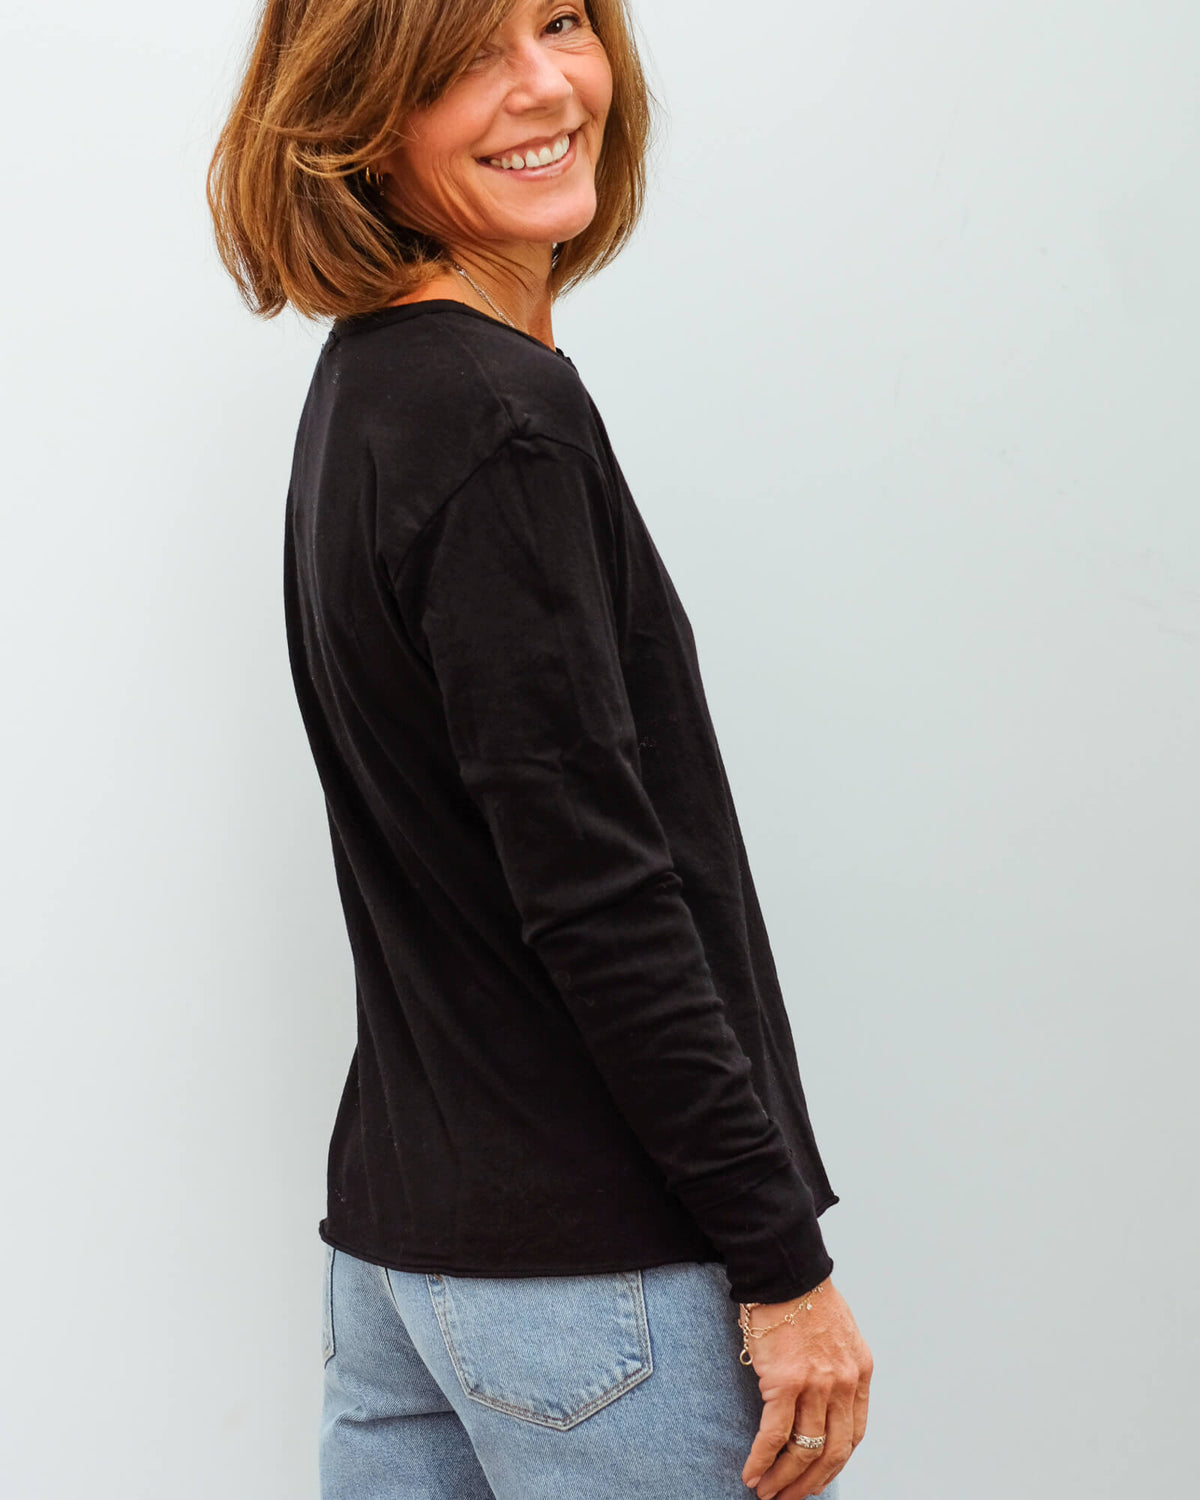 MSTARS Nadia long sleeve in black